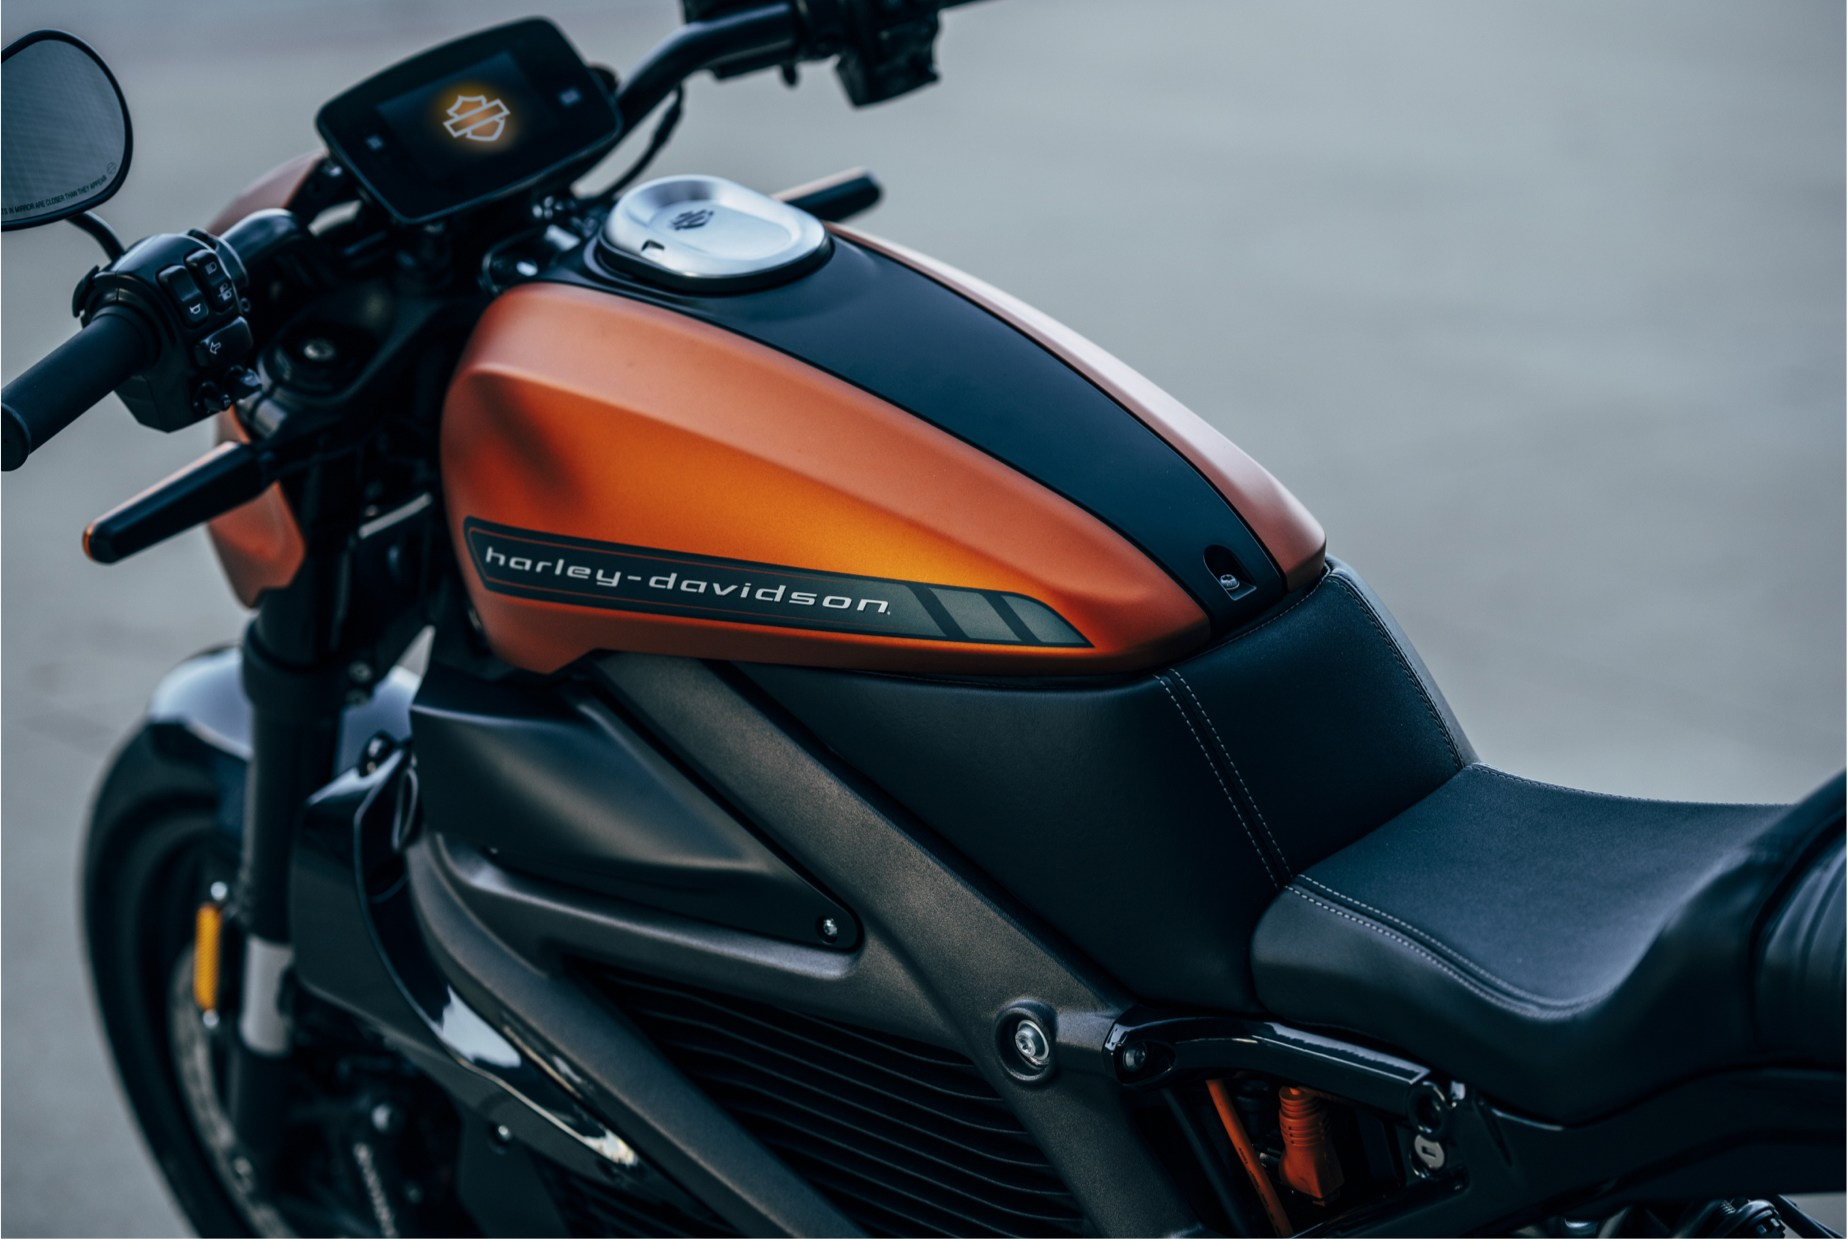 Outstanding 2020 Harley Davidson Livewire Price Range And Speed Revzilla Caraccident5 Cool Chair Designs And Ideas Caraccident5Info